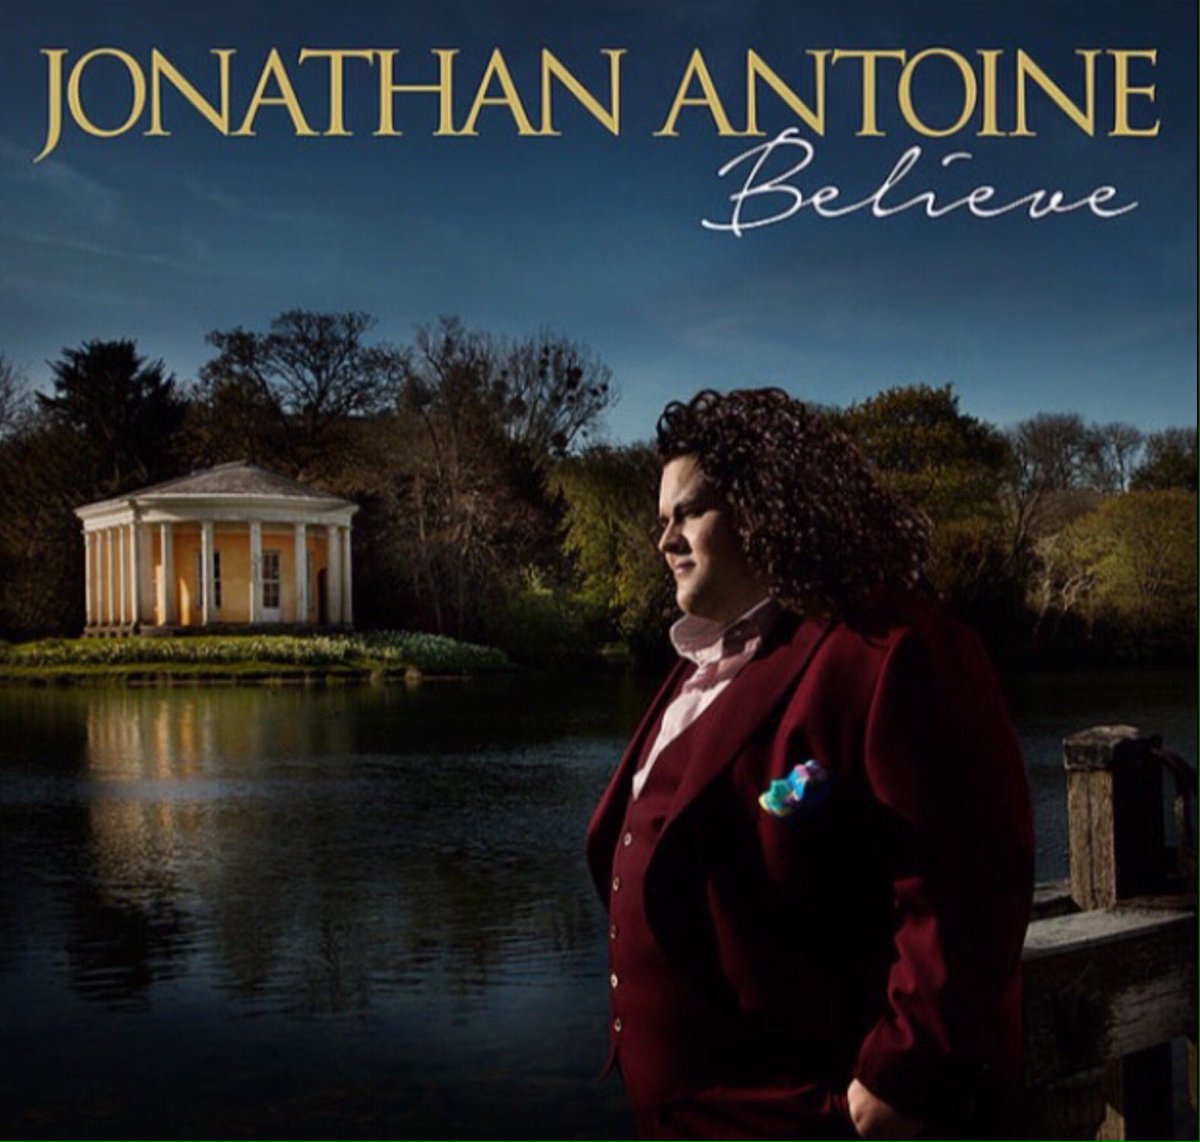 @JonAntoine Whatever exciting venture you have this evening, have fun and enjoy it! #LuckyPeople #Believe <br>http://pic.twitter.com/KYx0zePNkq